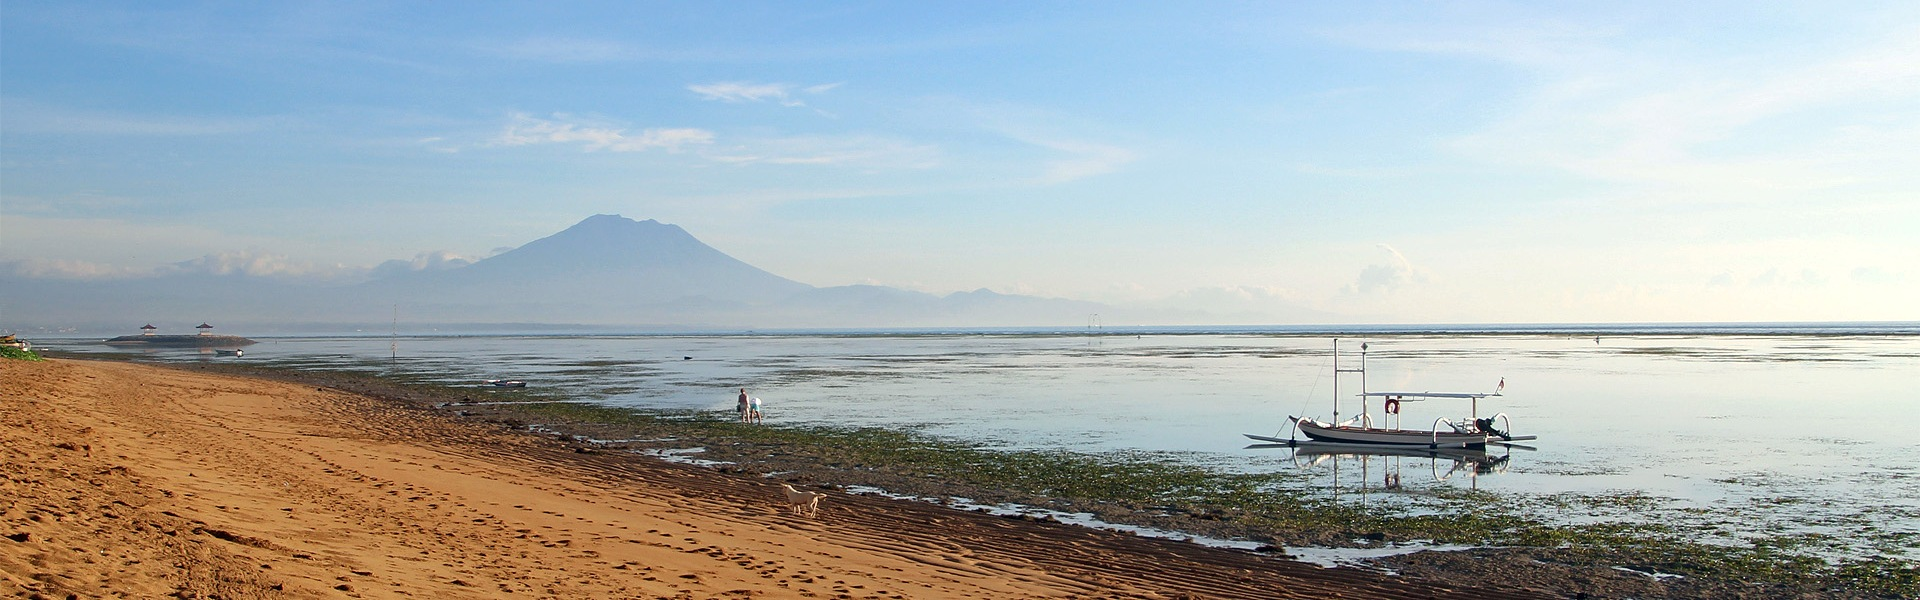 Early morning on Sanur Beach with Mt Agung in the background, Bali